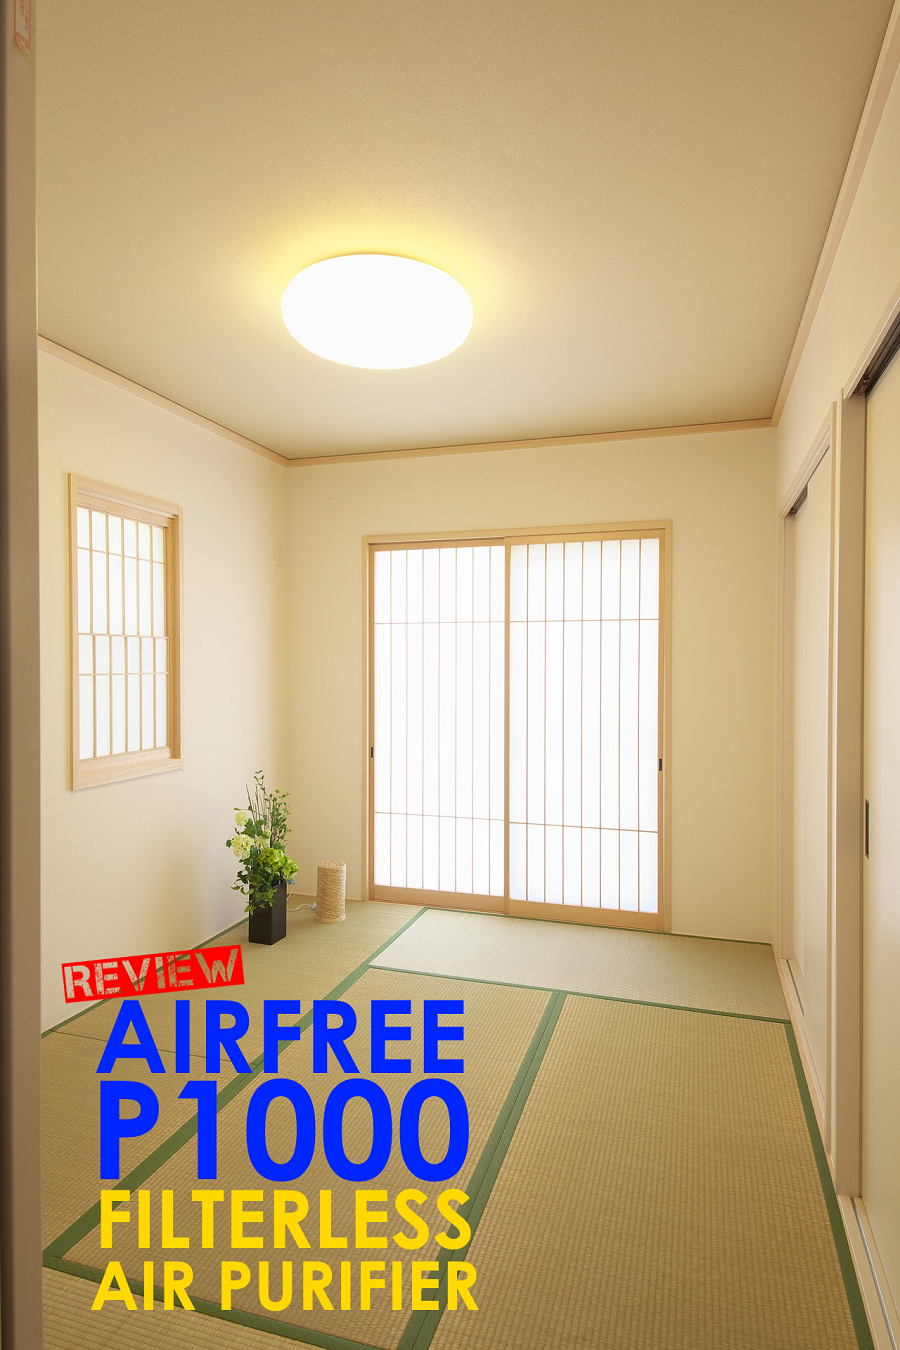 AirFree P1000 Filterless Air Purifier Review